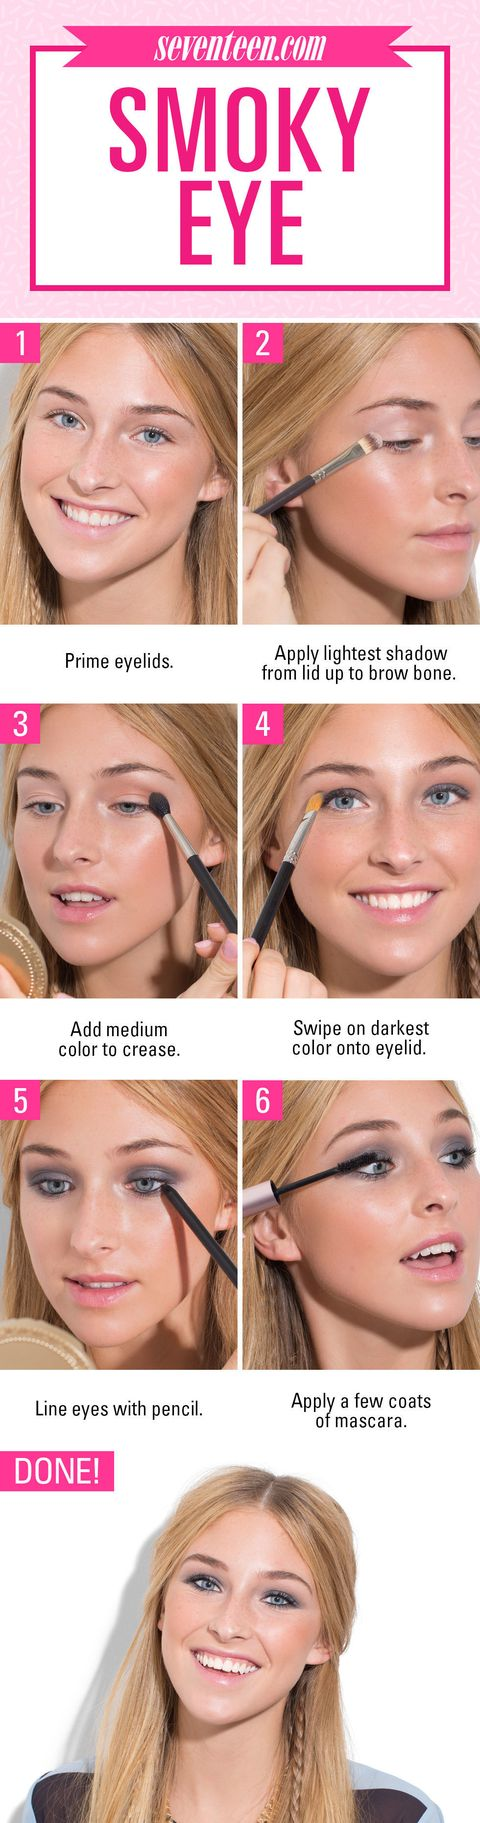 10 Essential Makeup Looks Every Girl